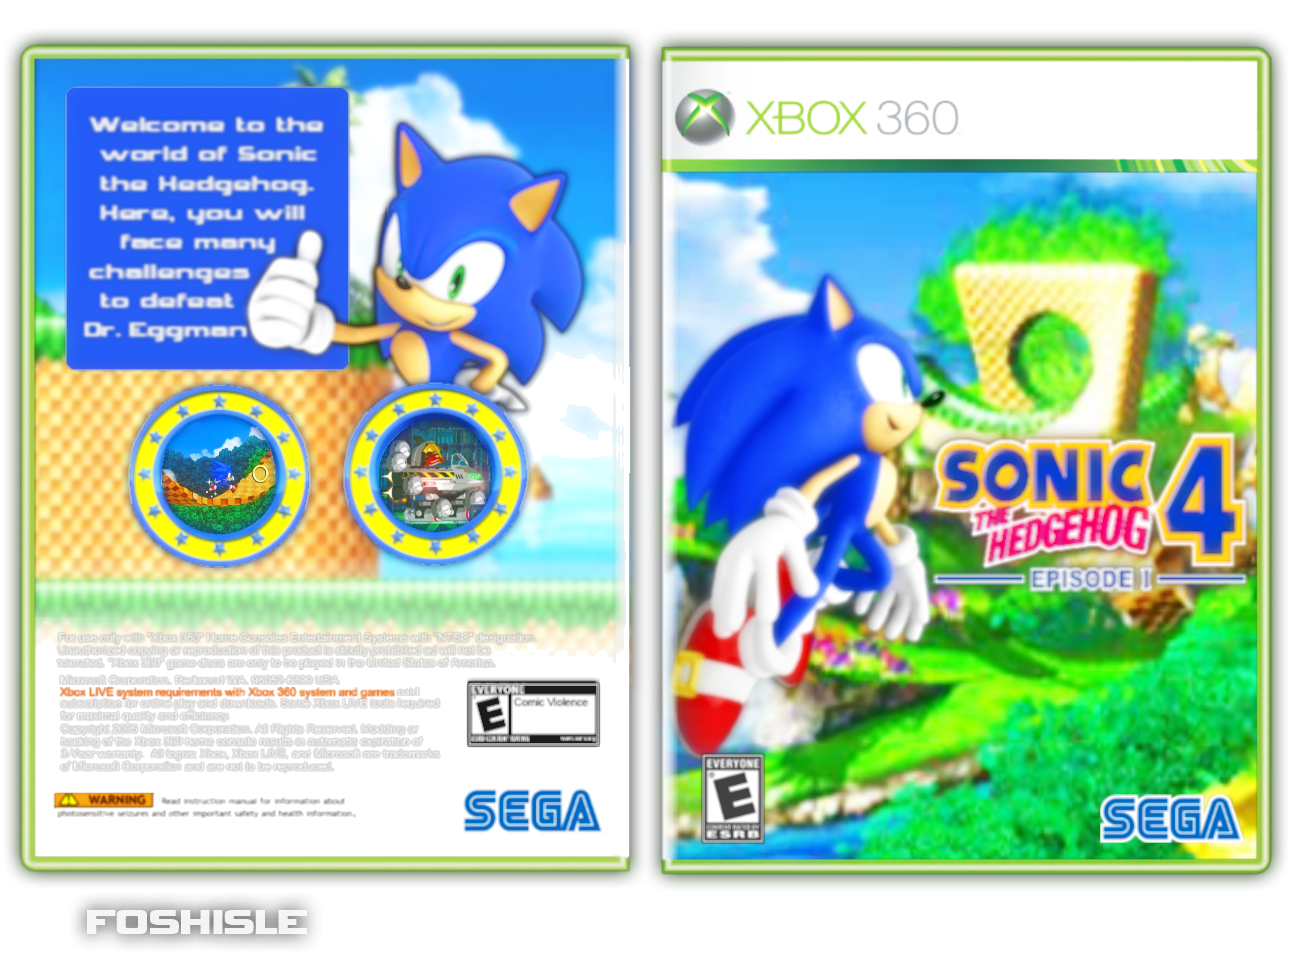 Sonic The Hedgehog 4 Episode 1 Xbox 360 Box Art Cover By Foshisle